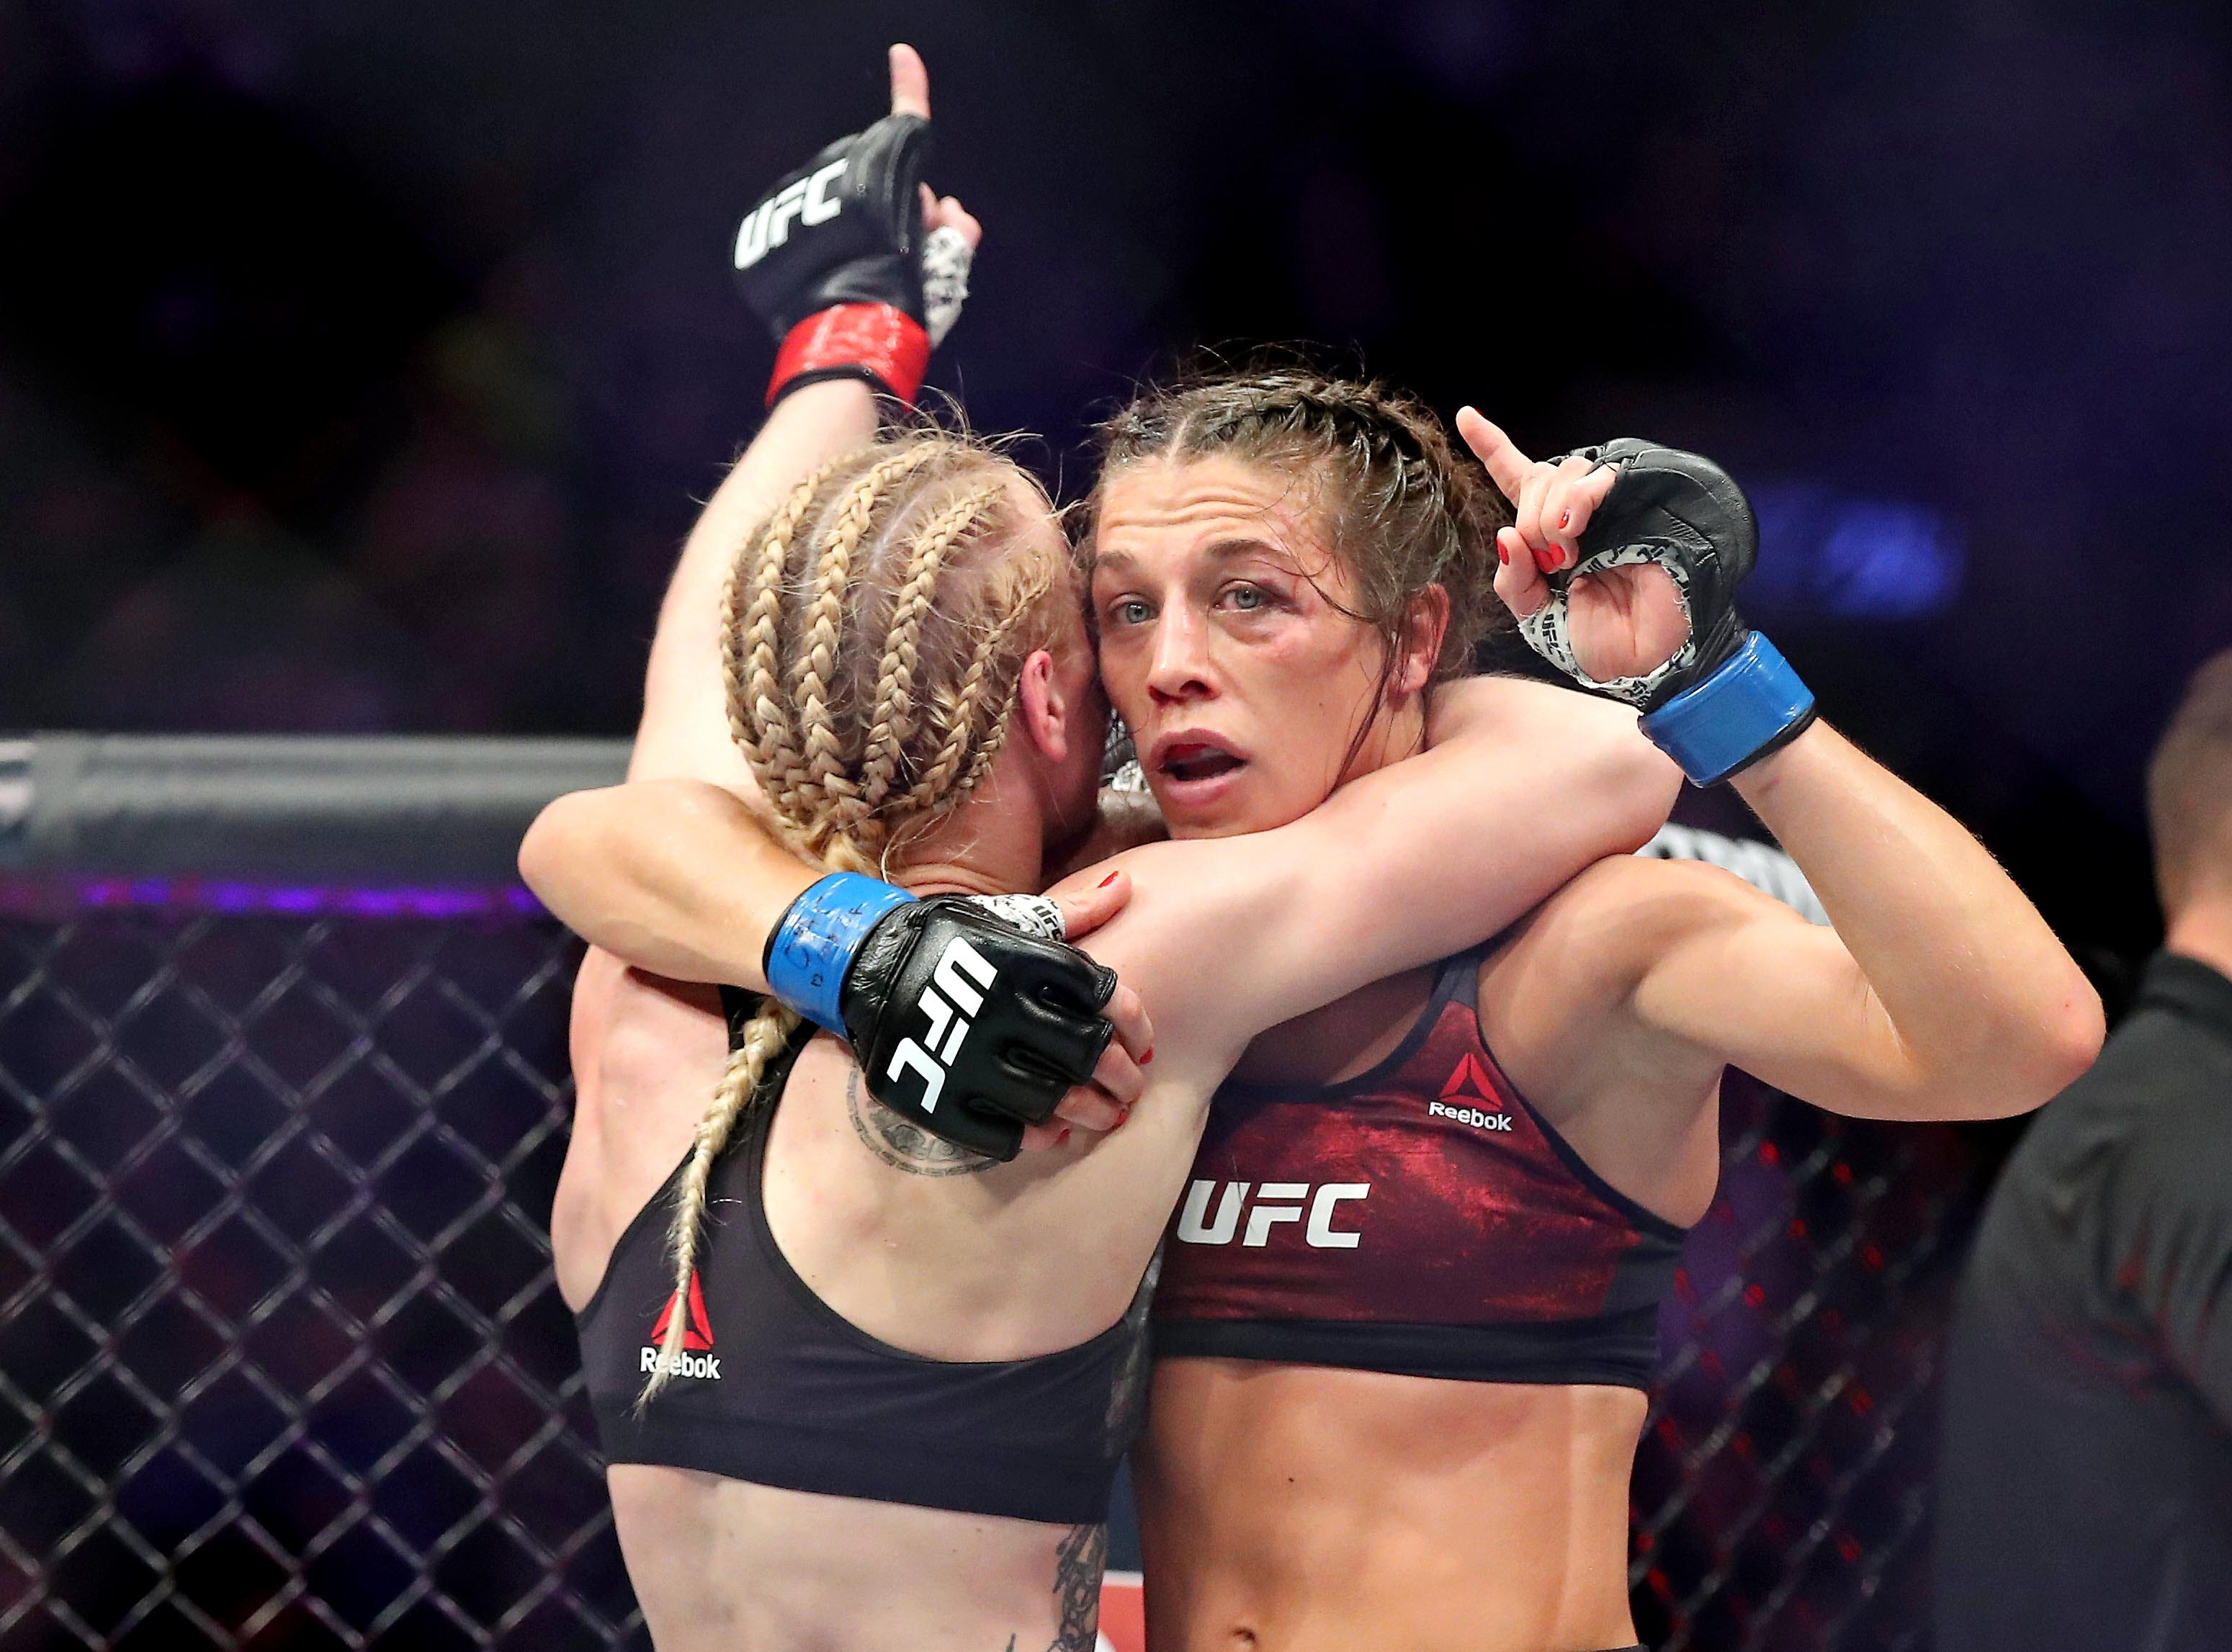 Valentina Shevchenko (red gloves) embraces Joanna Jedrzejczyk (blue gloves) after their fight during UFC 231 at Scotiabank Arena.